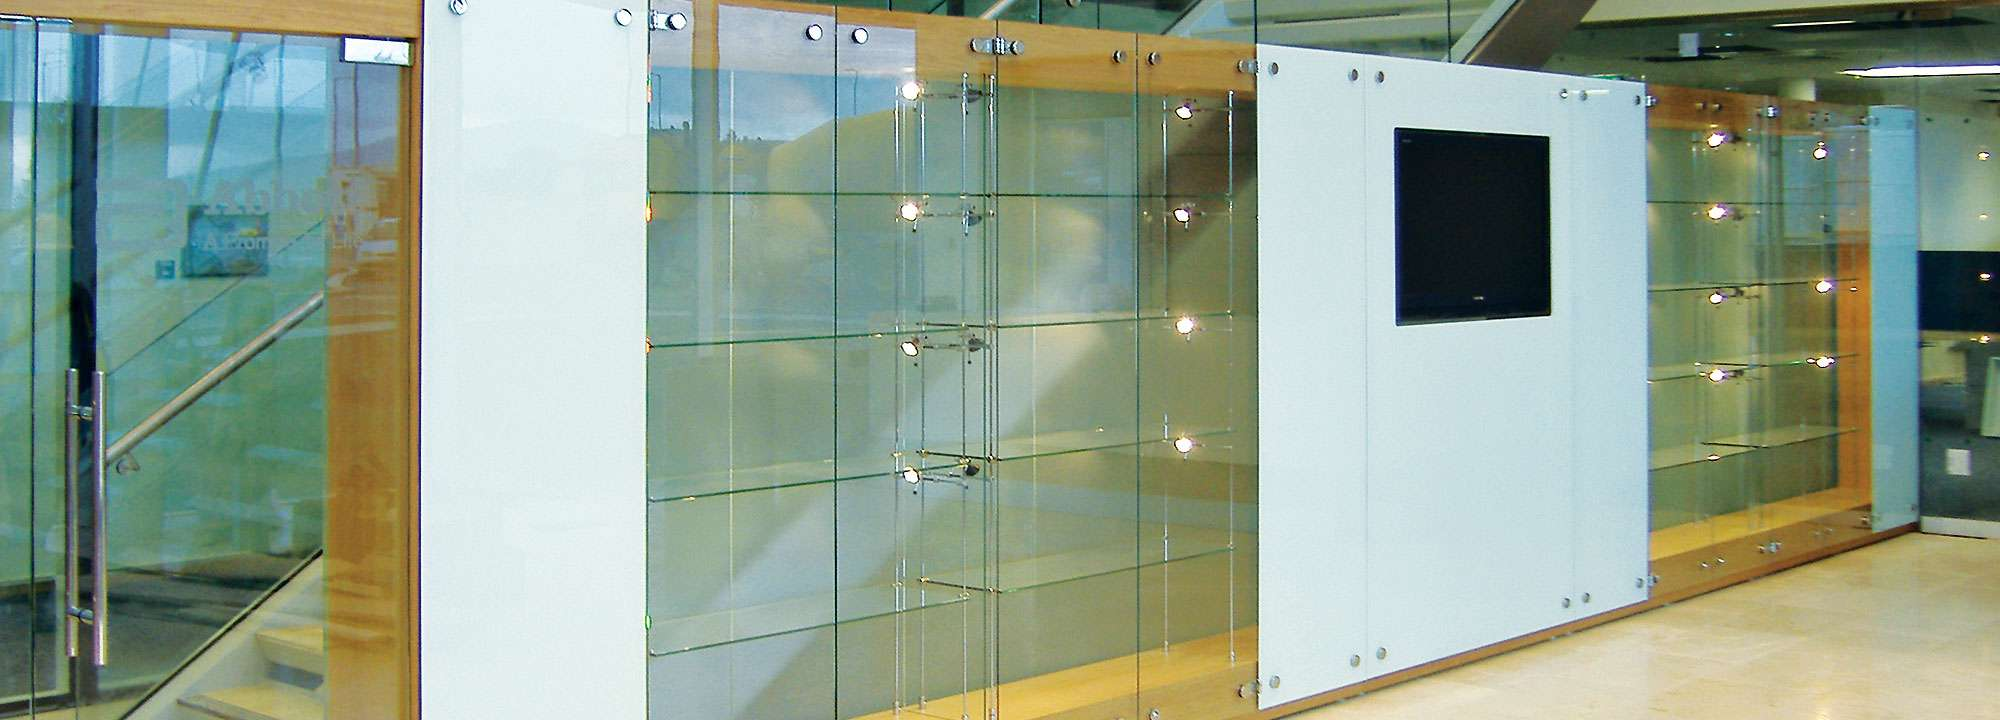 Cabinet Walls Comprised Of A Combination Of Glass Display Cabinets And  Panels With Low Voltage Lightning